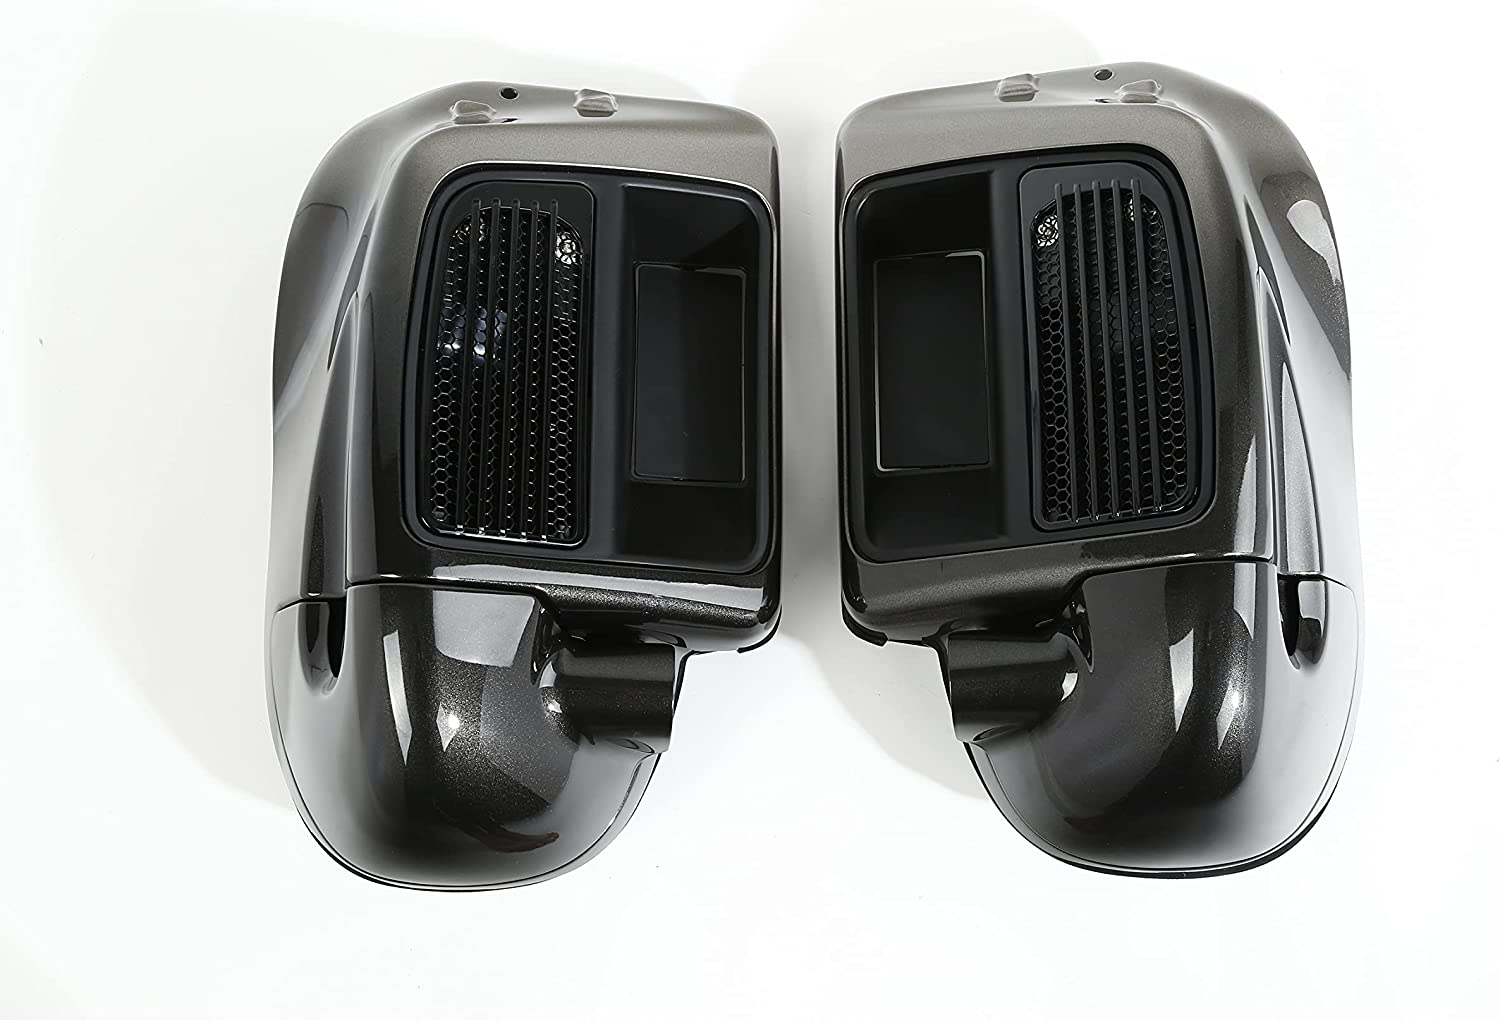 Black Earth Fade Water ! Super beauty product restock quality top! Cooled Vented Lower Fairing Mail order Harle For Fit